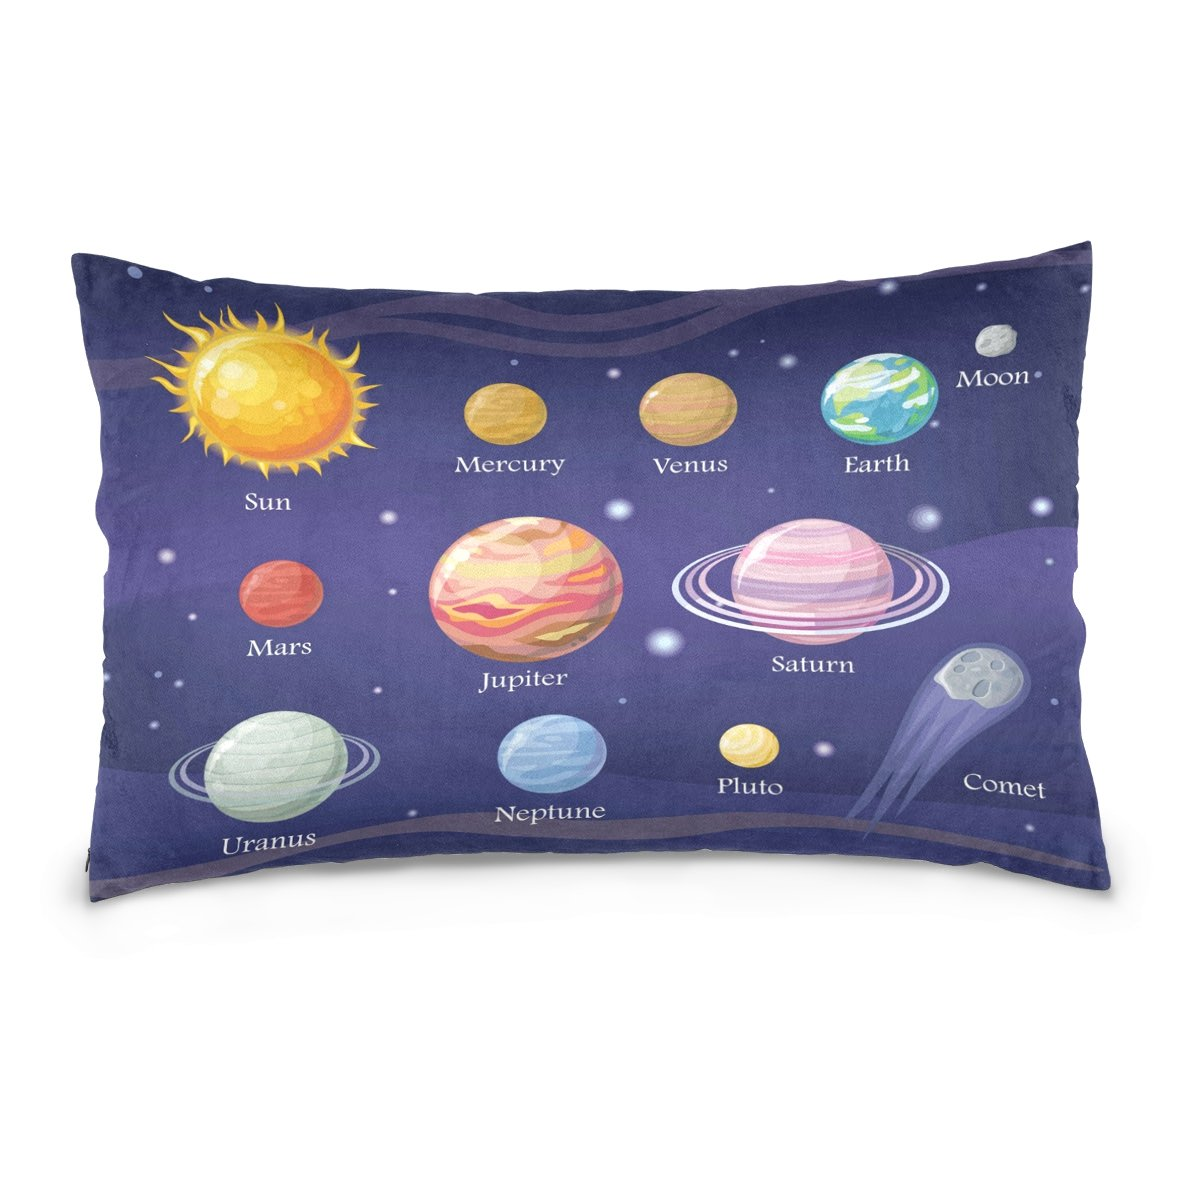 ALAZA Solar System Space Planet Star Cotton Lint Pillow Case,Double-sided Printing Home Decor Pillowcase Size 16''x24'',for Bedroom Women Girl Boy